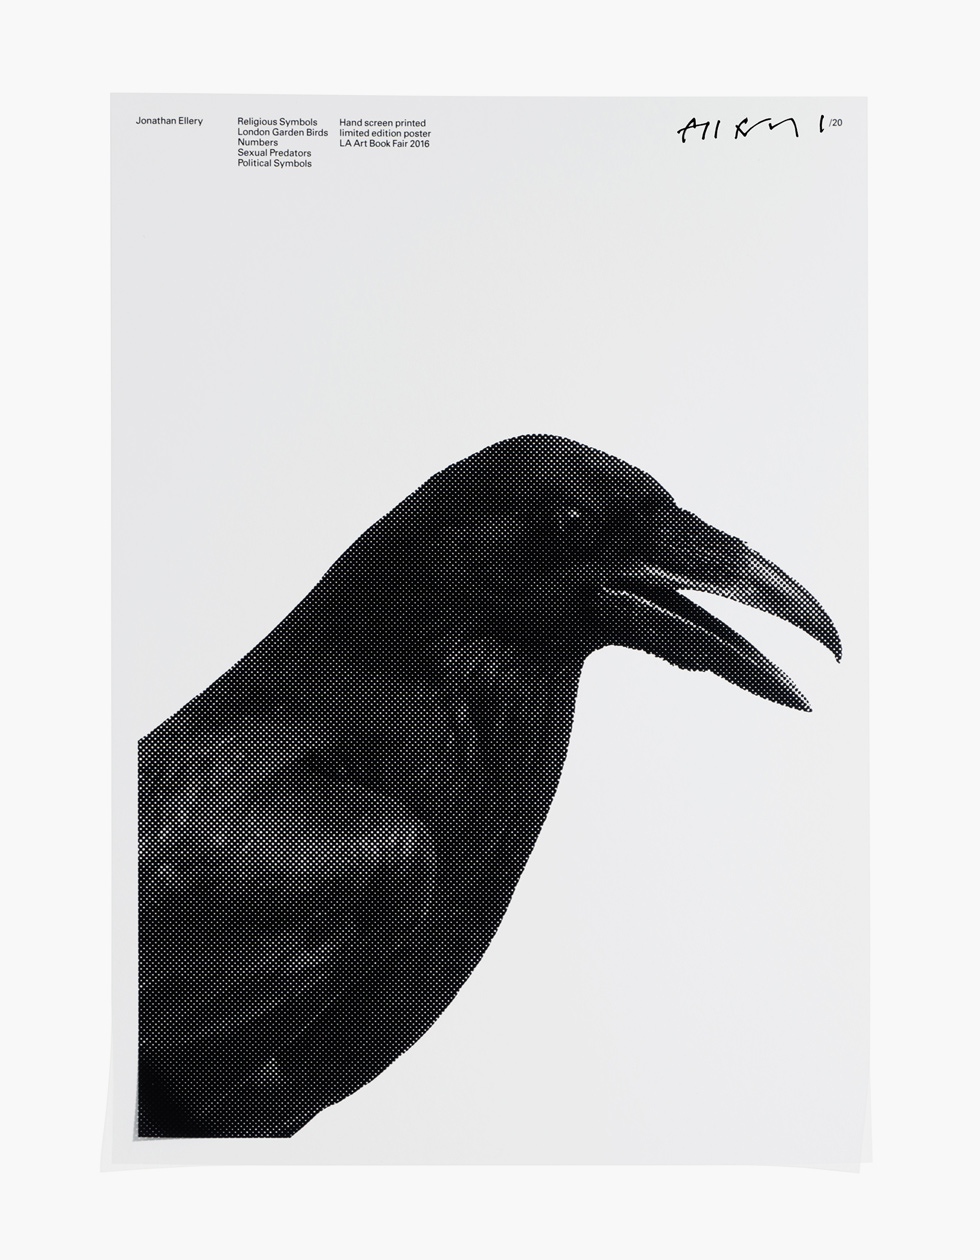 Jonathan Ellery, art, Religious Symbols/ London Garden Birds/ Numbers/ Sexual Predators/ Political Symbols